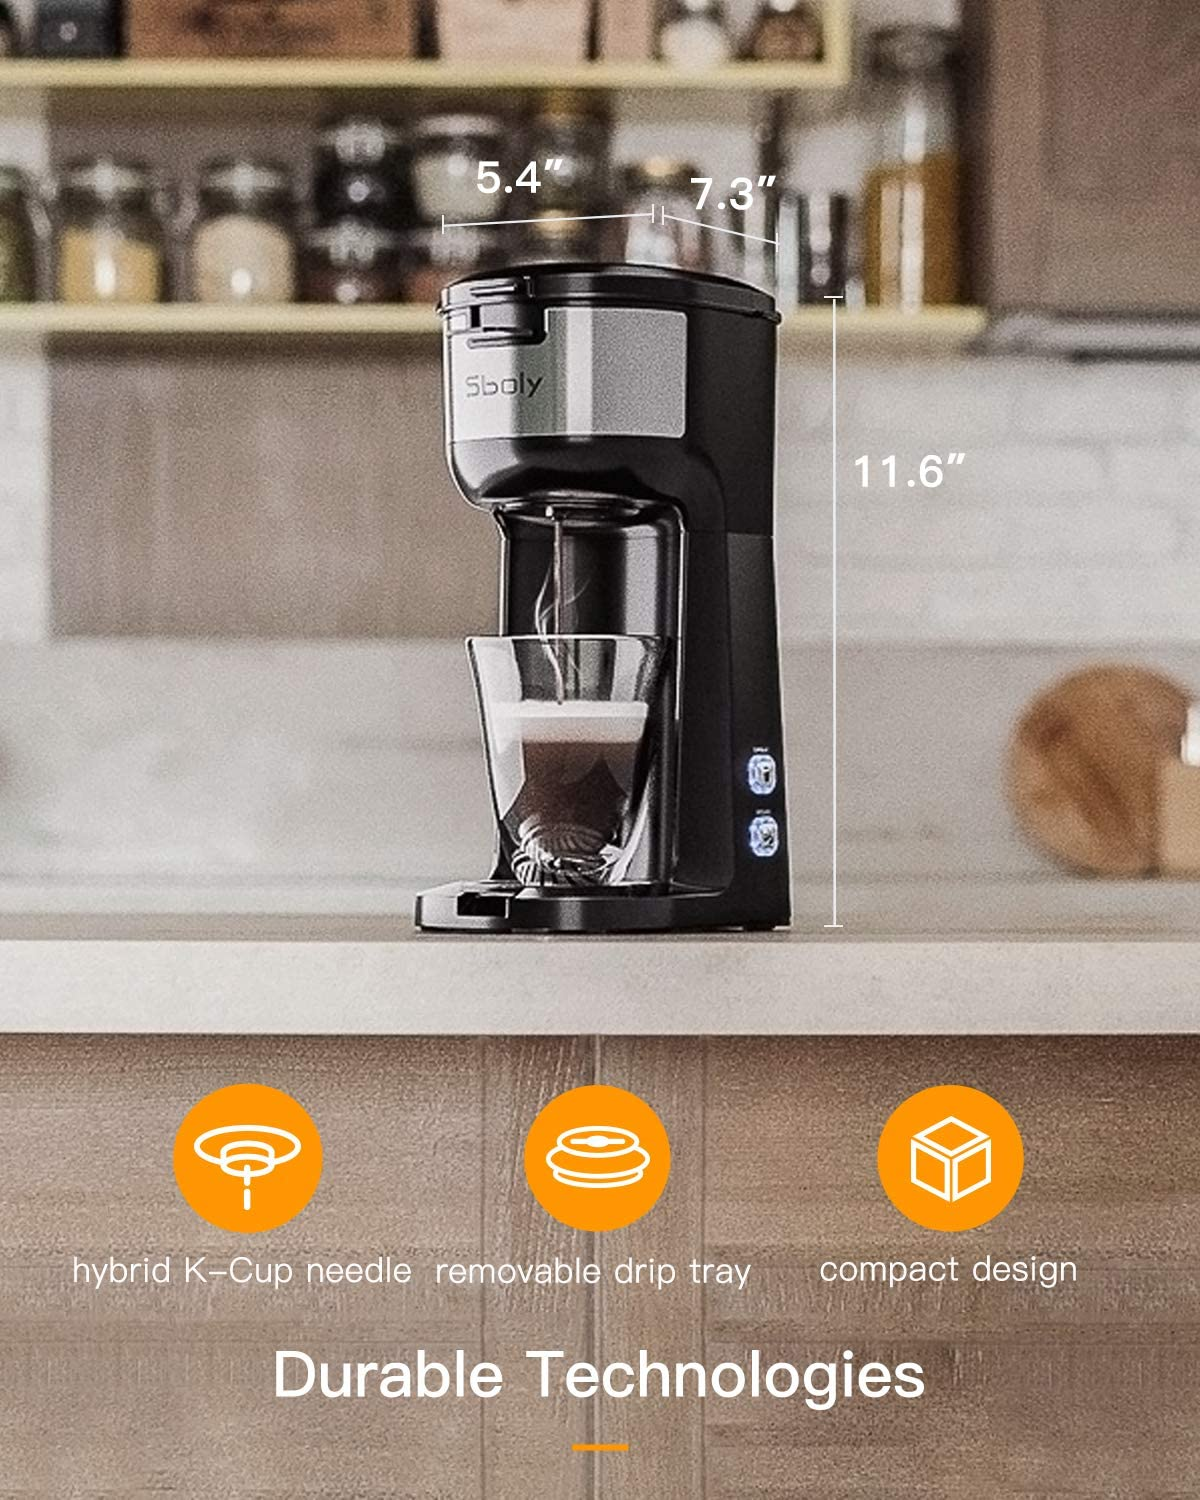 Sboly Single Serve Coffee Maker Brewer for K-Cup Pod & Ground Coffee Thermal Drip Instant Coffee Machine with Self Cleaning Function, Brew Strength Control: Kitchen & Dining